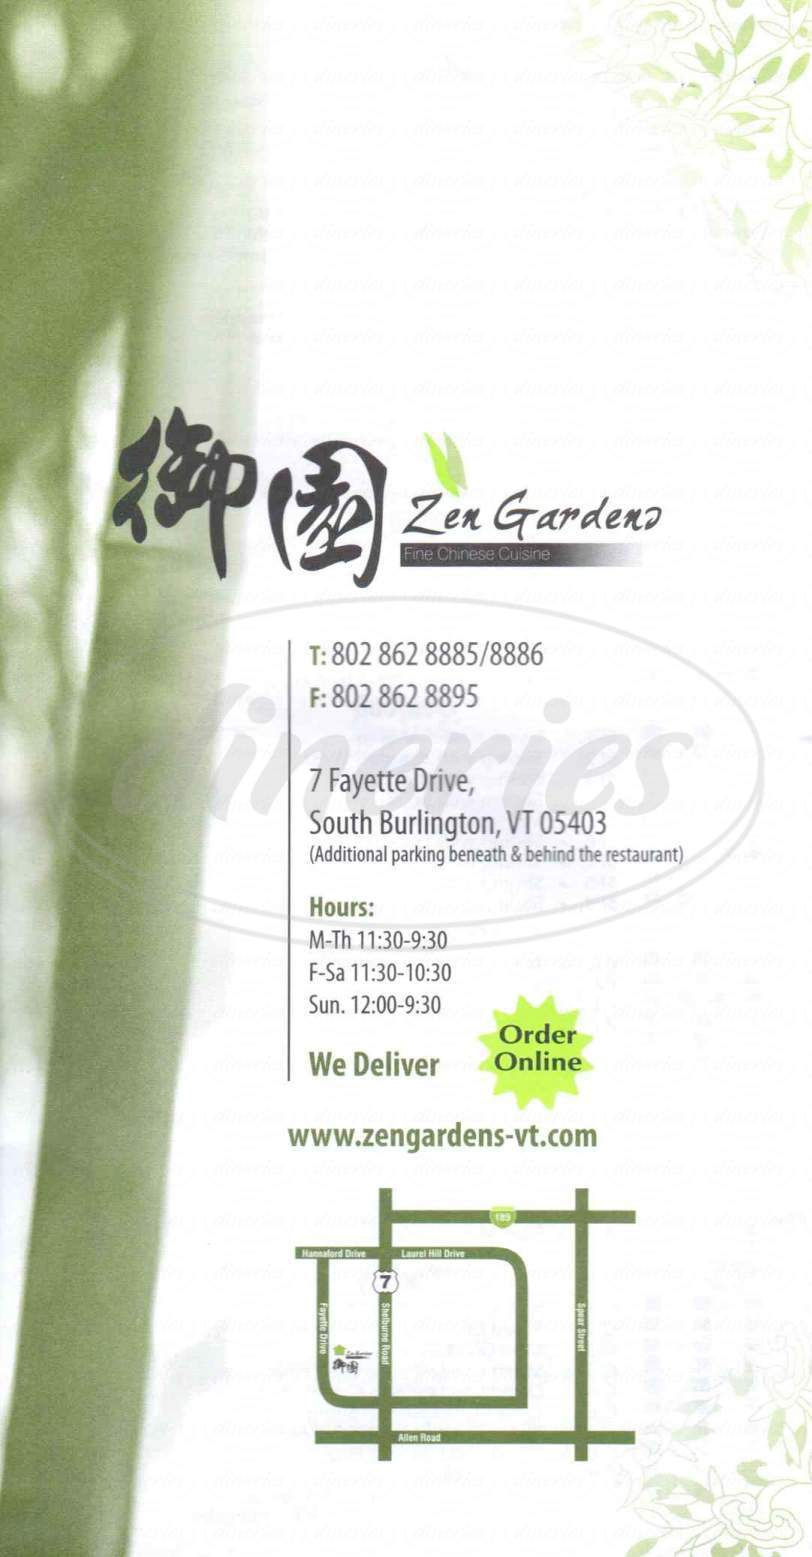 menu for Zen Gardens